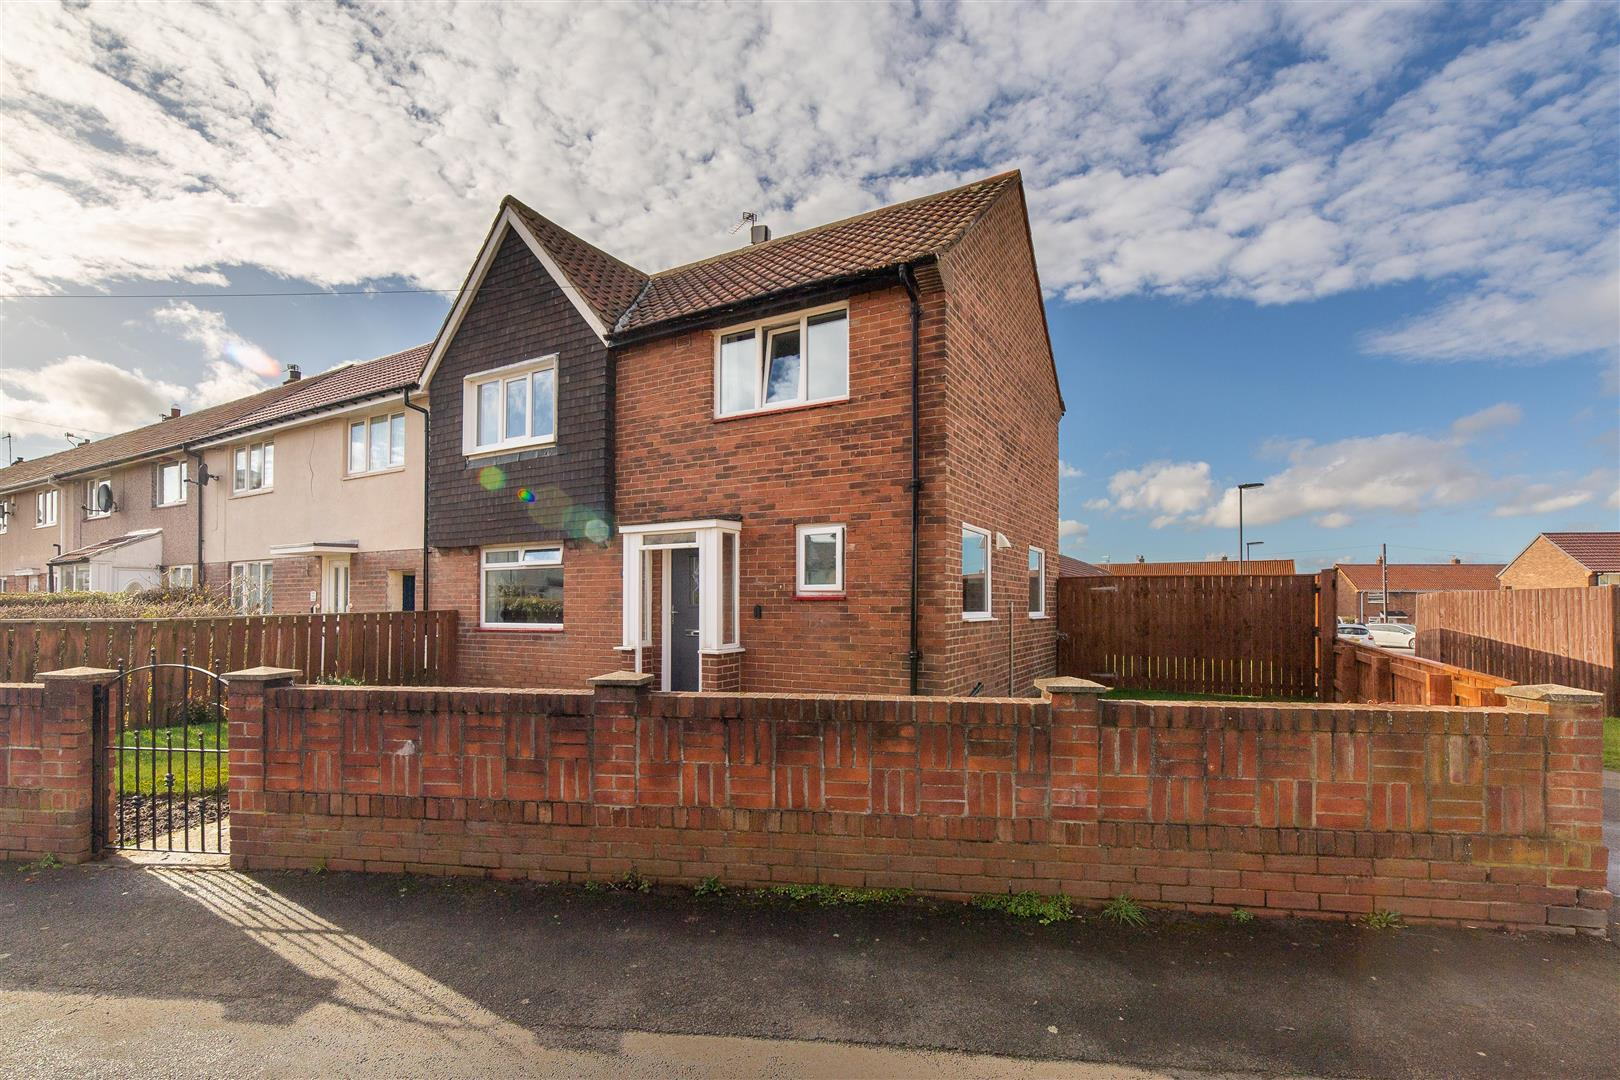 3 bed semi-detached house for sale in Newcastle Upon Tyne, NE12 8NU, NE12